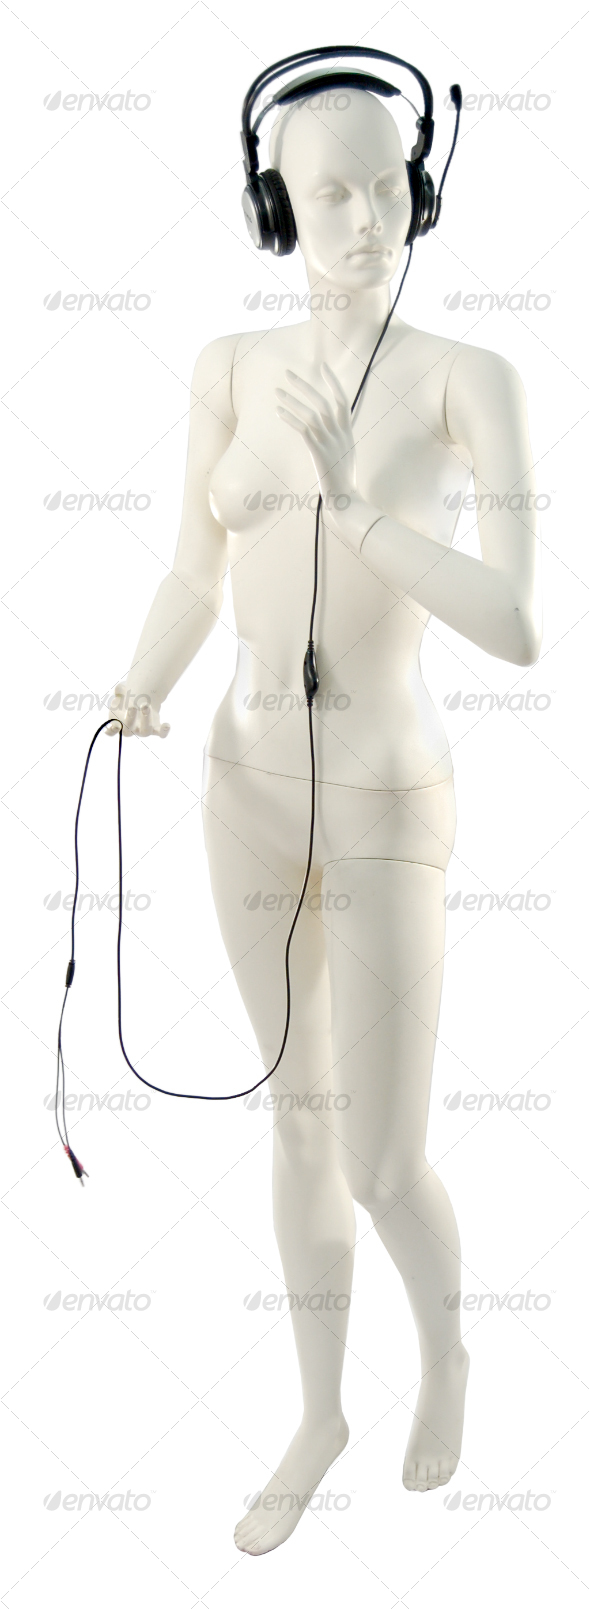 Mannequin with Headphones - Clothes & Accessories Isolated Objects